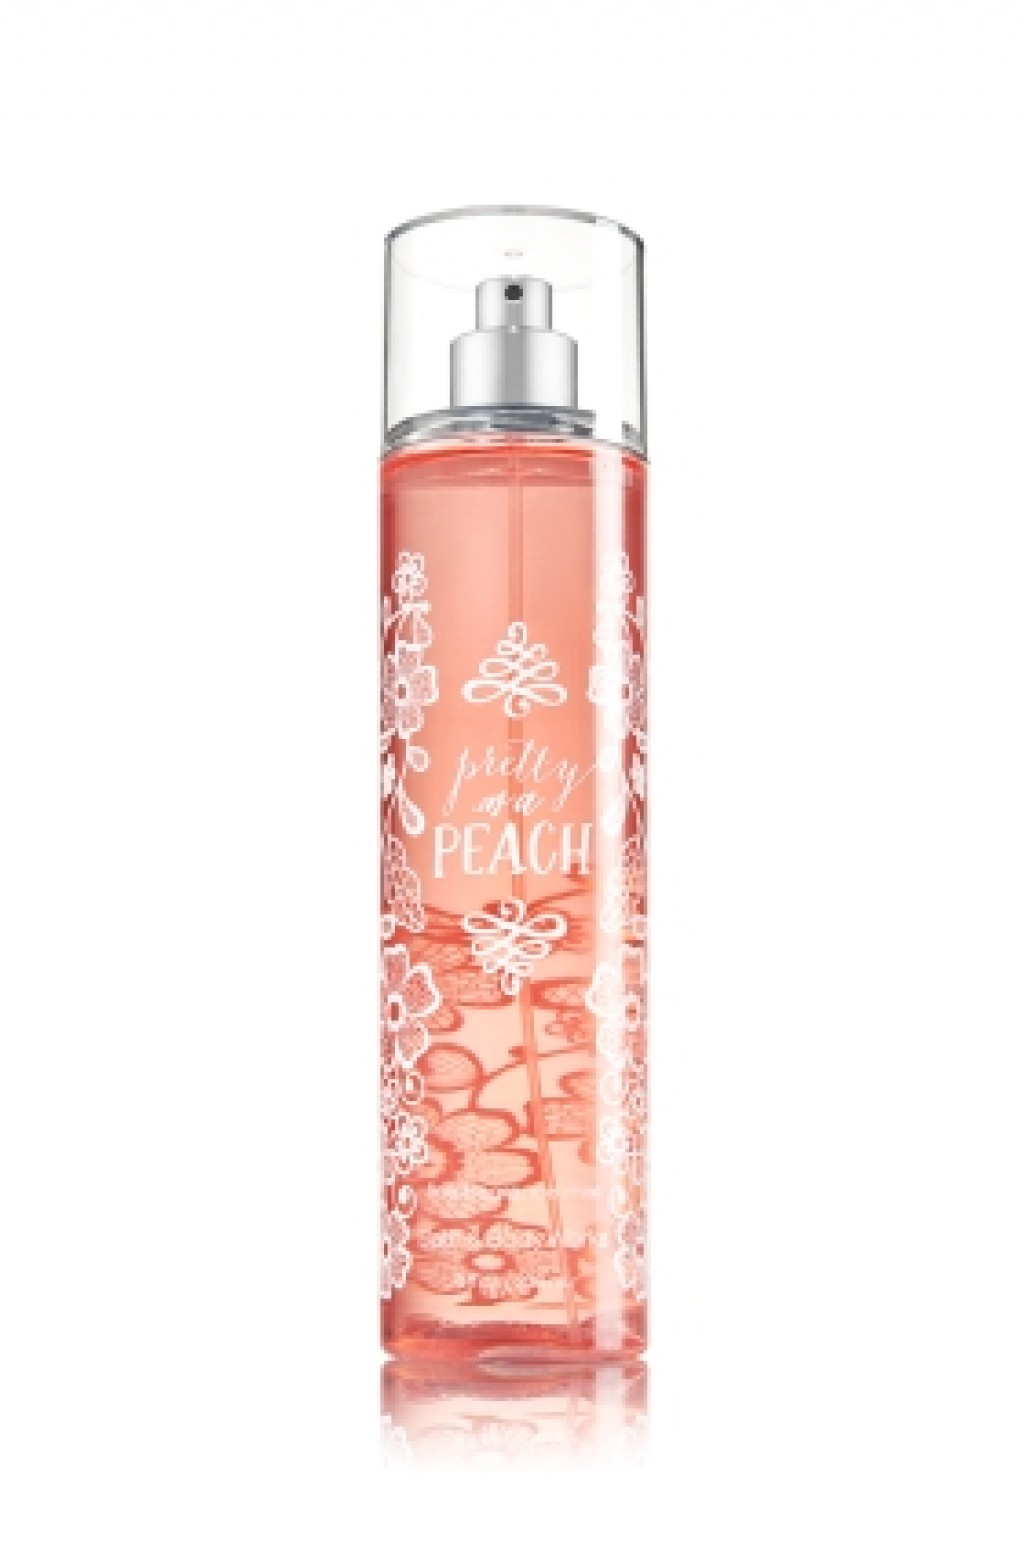 The Best Bath And Body Works Scents Of course, personal preference comes into play and has everything to do with whether you like earthy smells, sweet scents like a vanilla-based fragrance, or fruity scents like candy apple.